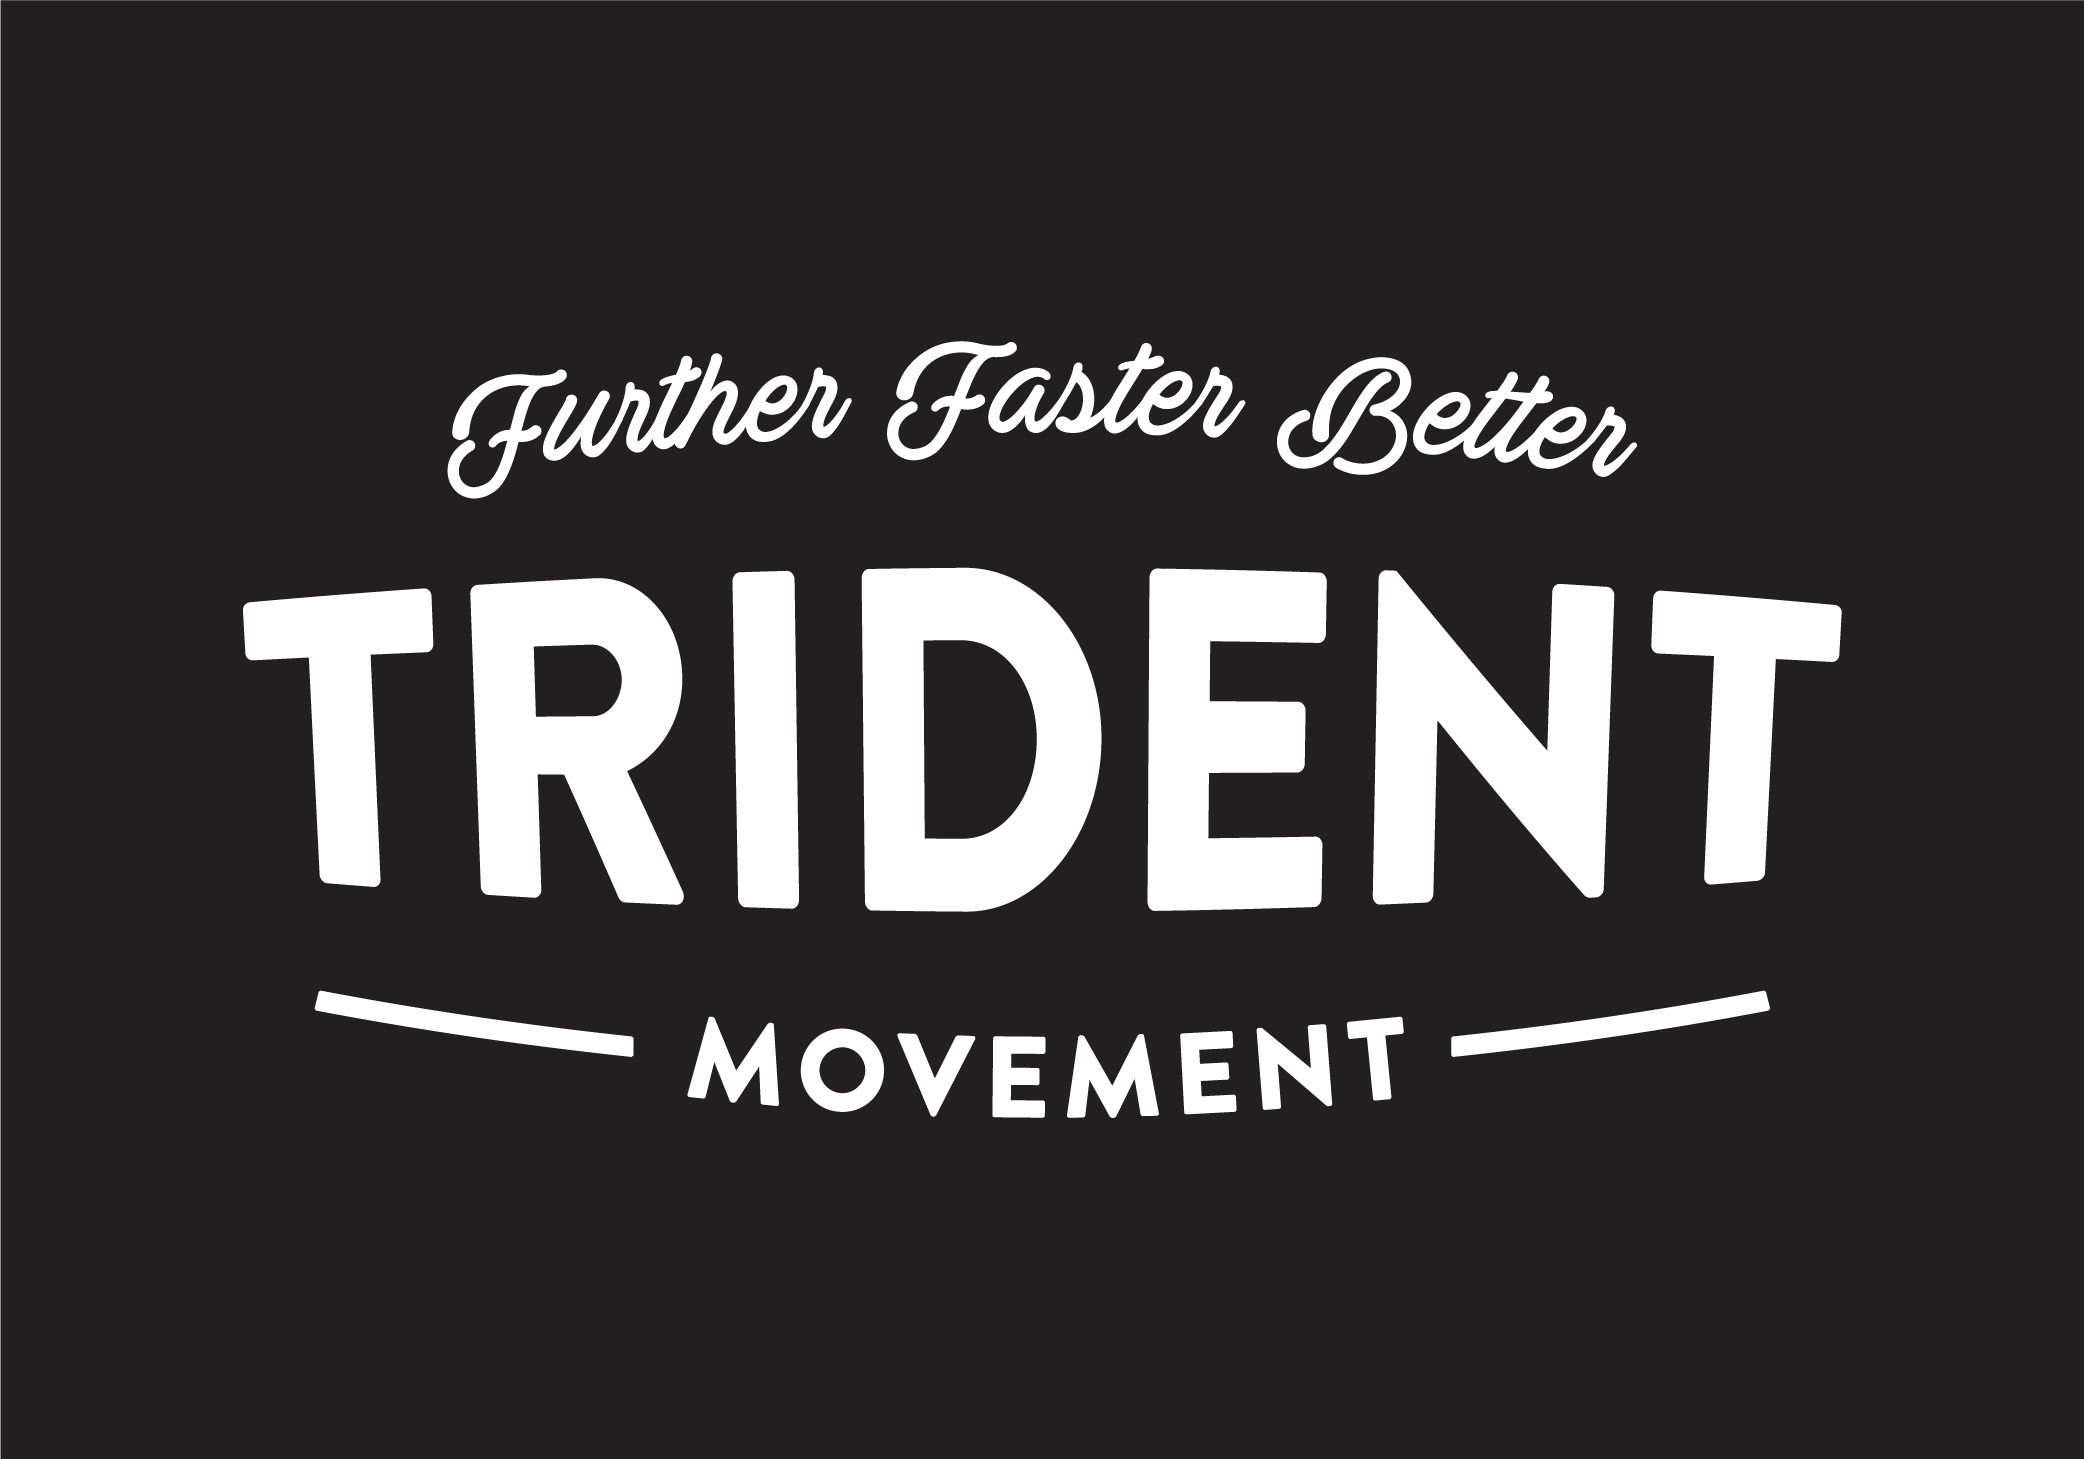 Trident Movement Dee Why